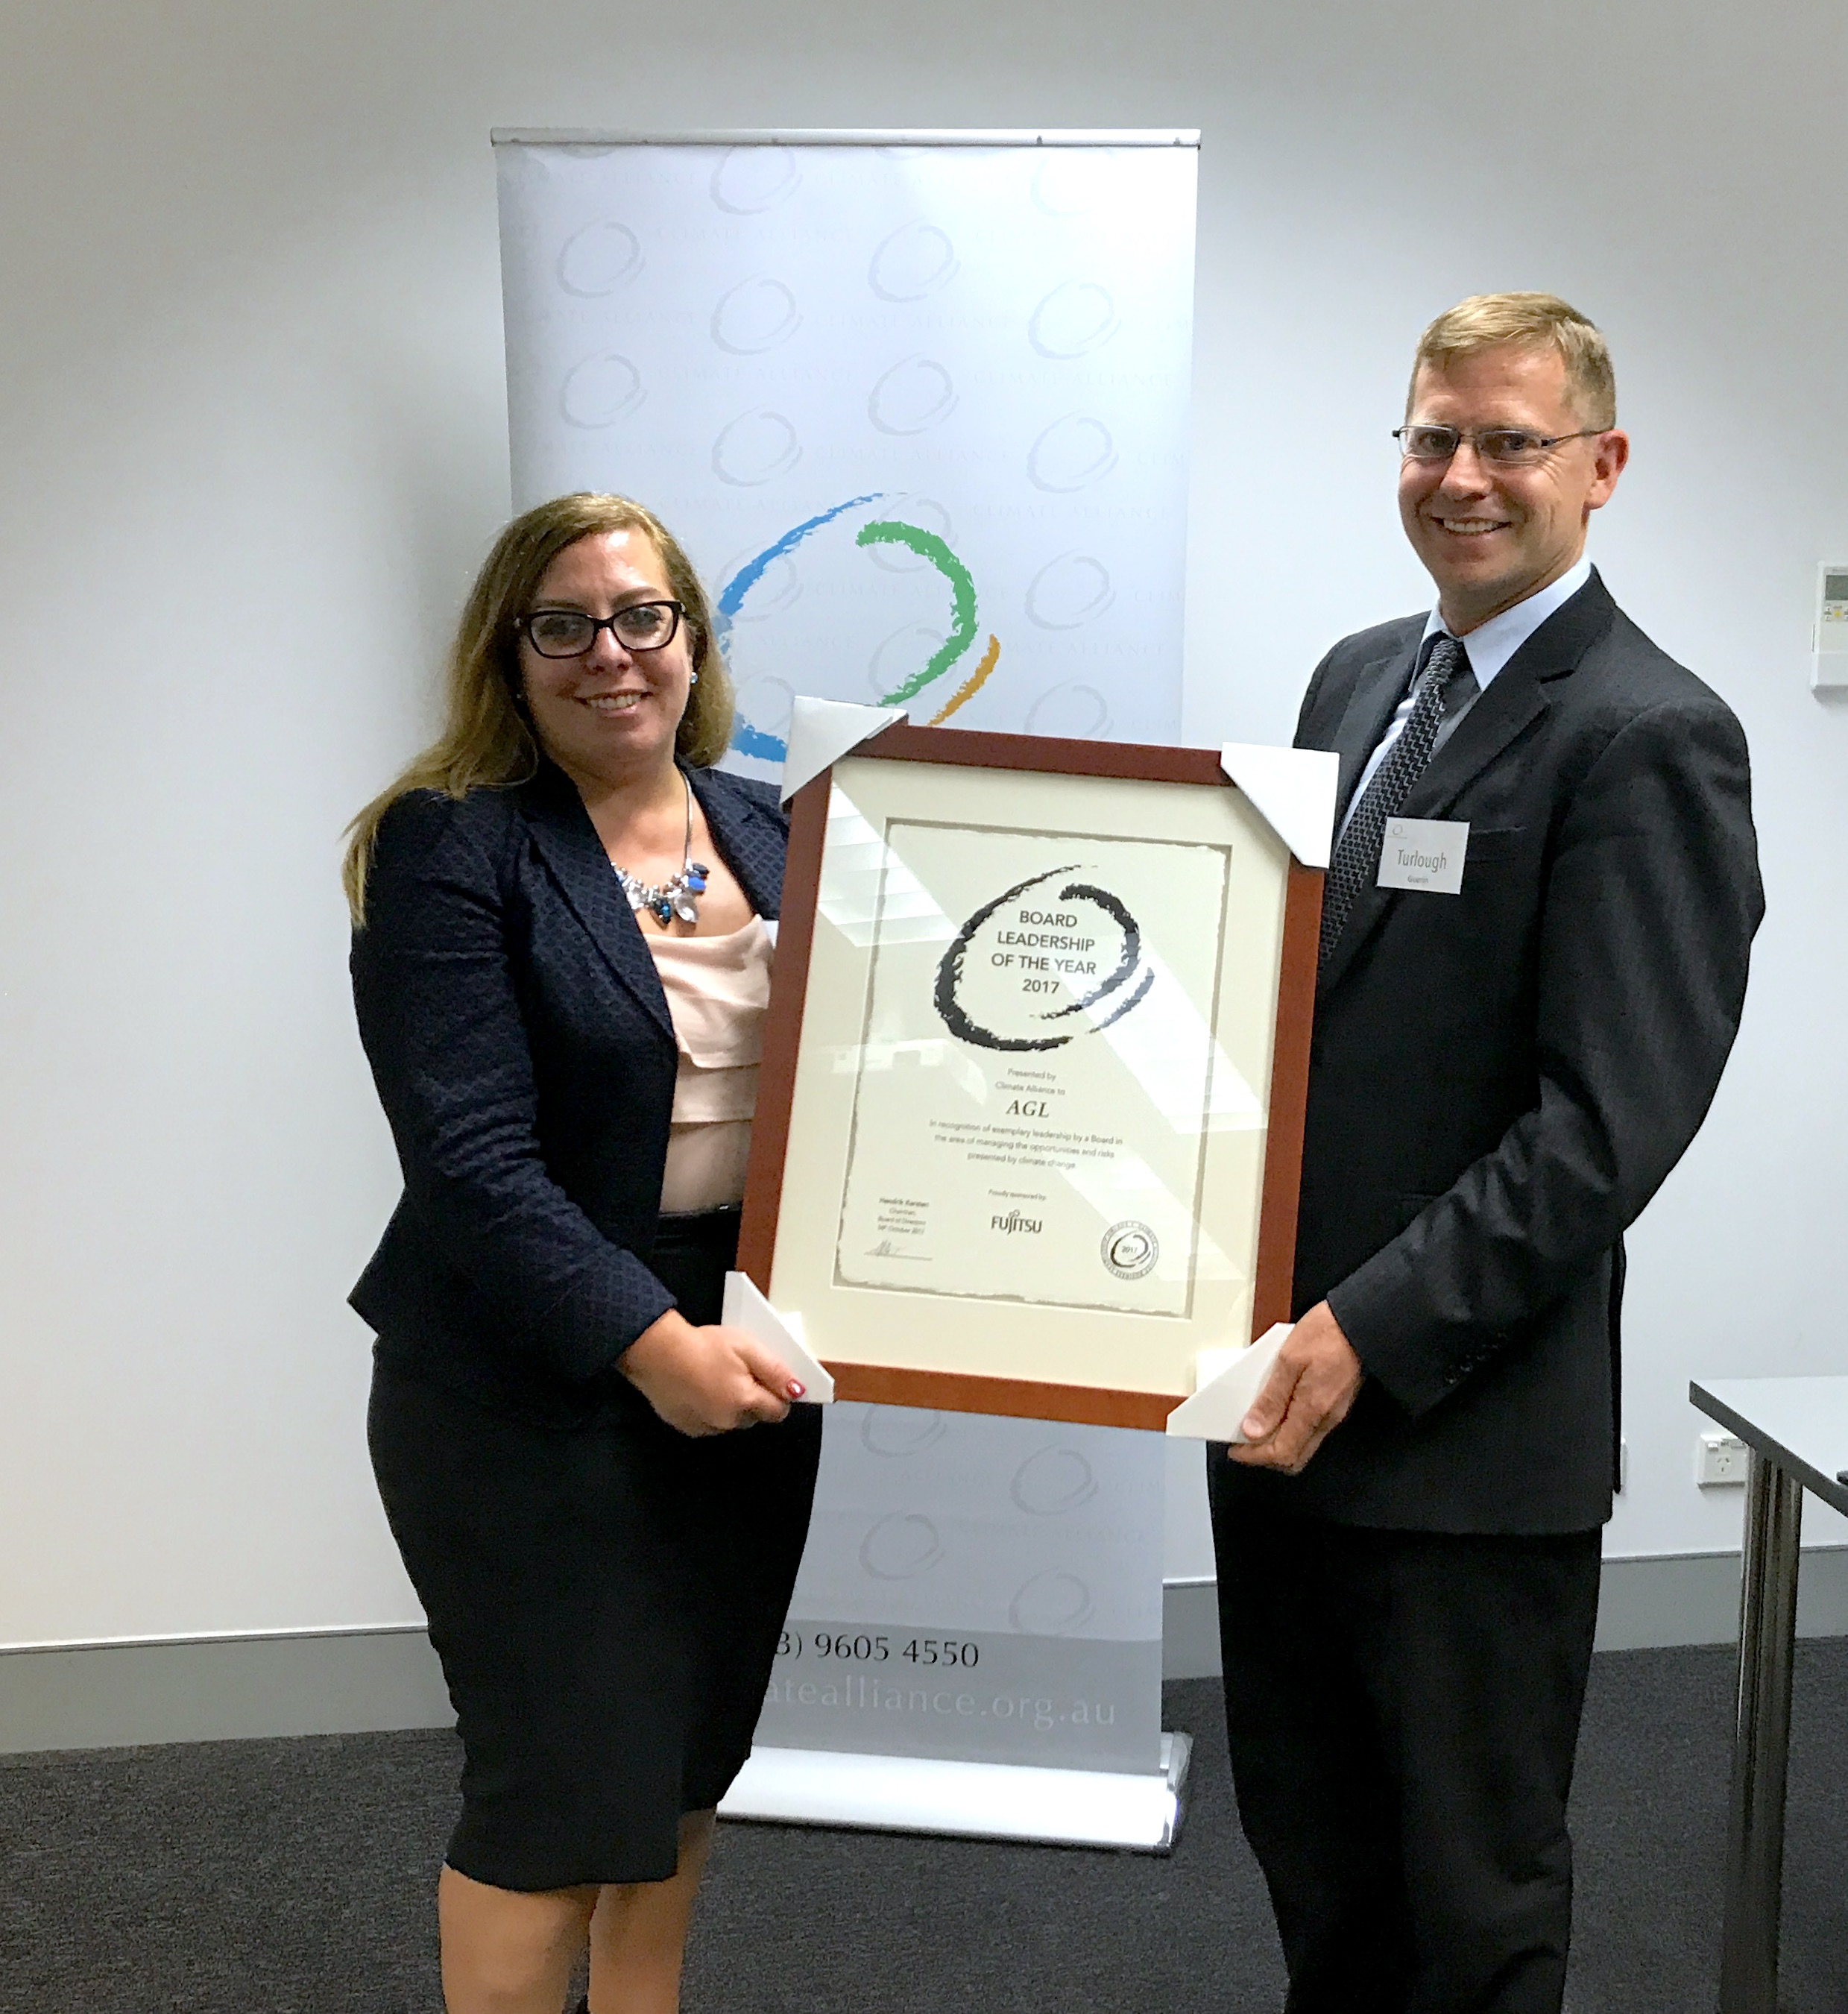 Board Leadership of the Year 2017 -AGL, represented by Stephanie Bashir with Turlough Guerin, Chairman of the Climate Alliance Board of Advisors.